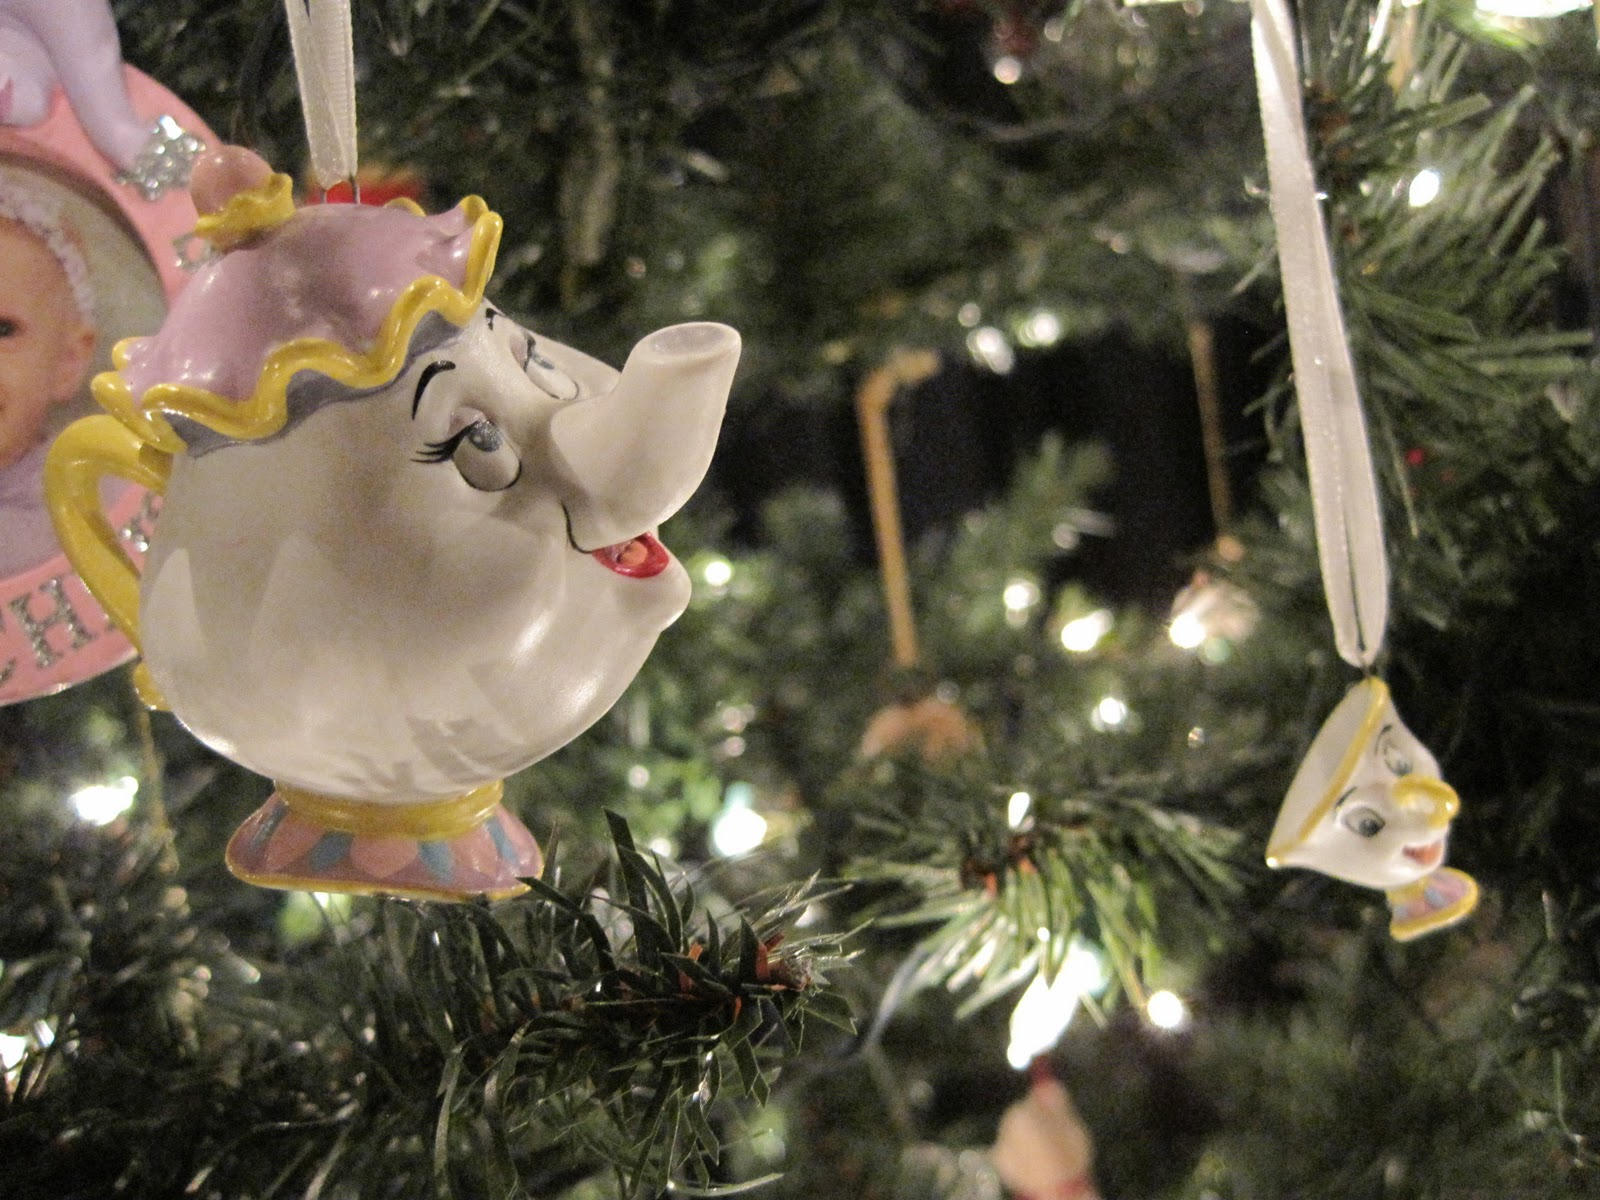 Mrs potts chip christmas decoration - These Are My Mrs Potts And Chip Ornaments From Hallmark I Got Them For Christmas A Few Years Ago From My Mom And Dad They Look Really Cute On The Tree